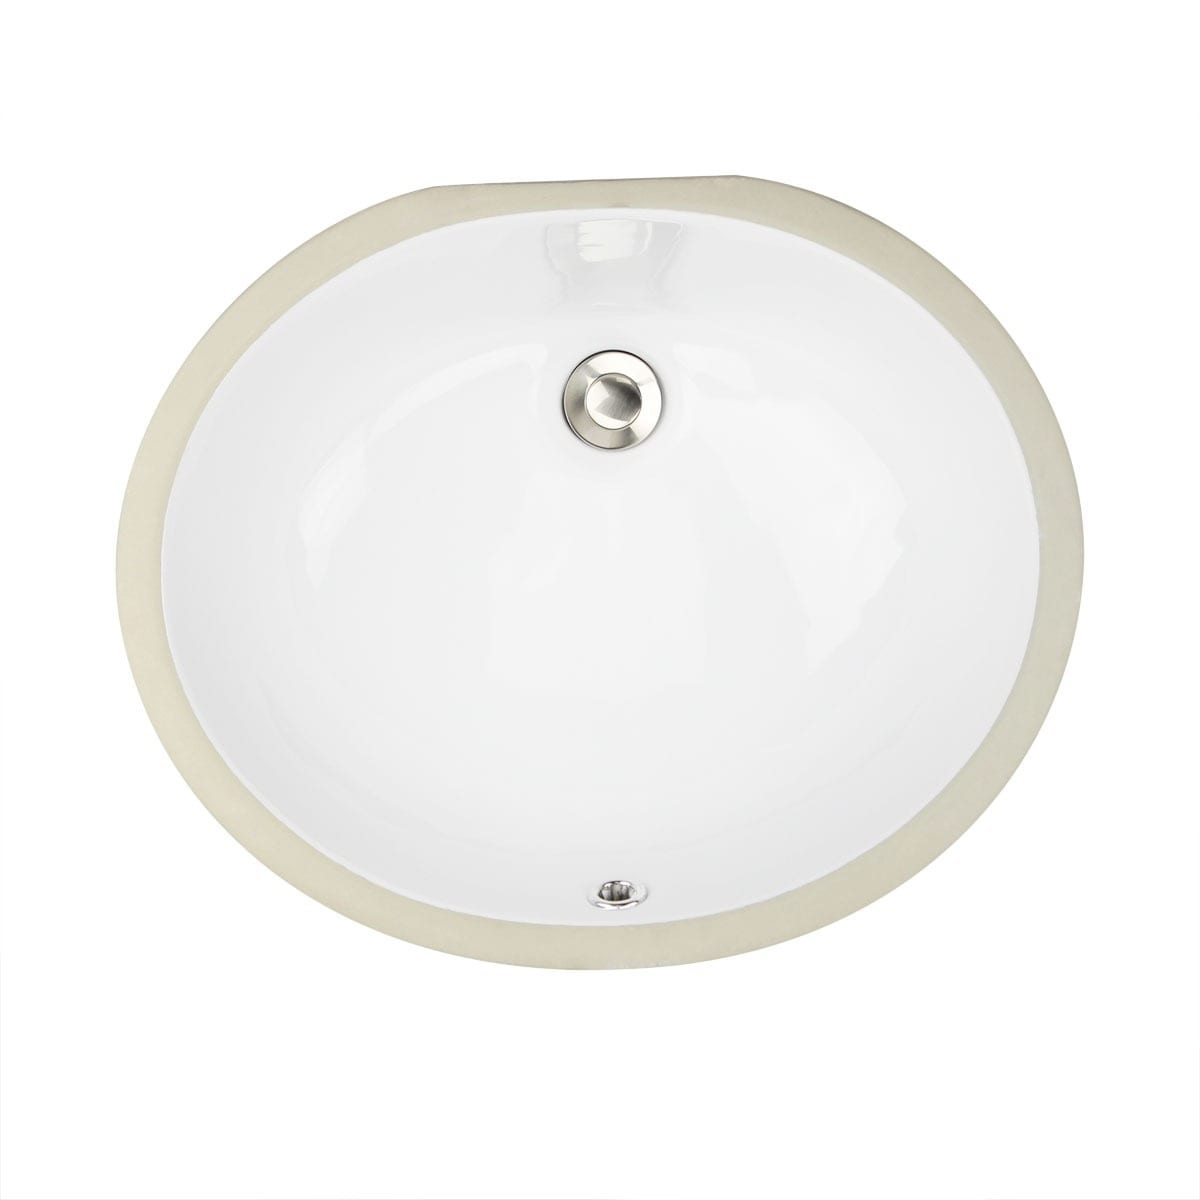 Oval White 17x14 Inch Undermount Vanity Sink Free Shipping Today 3933057